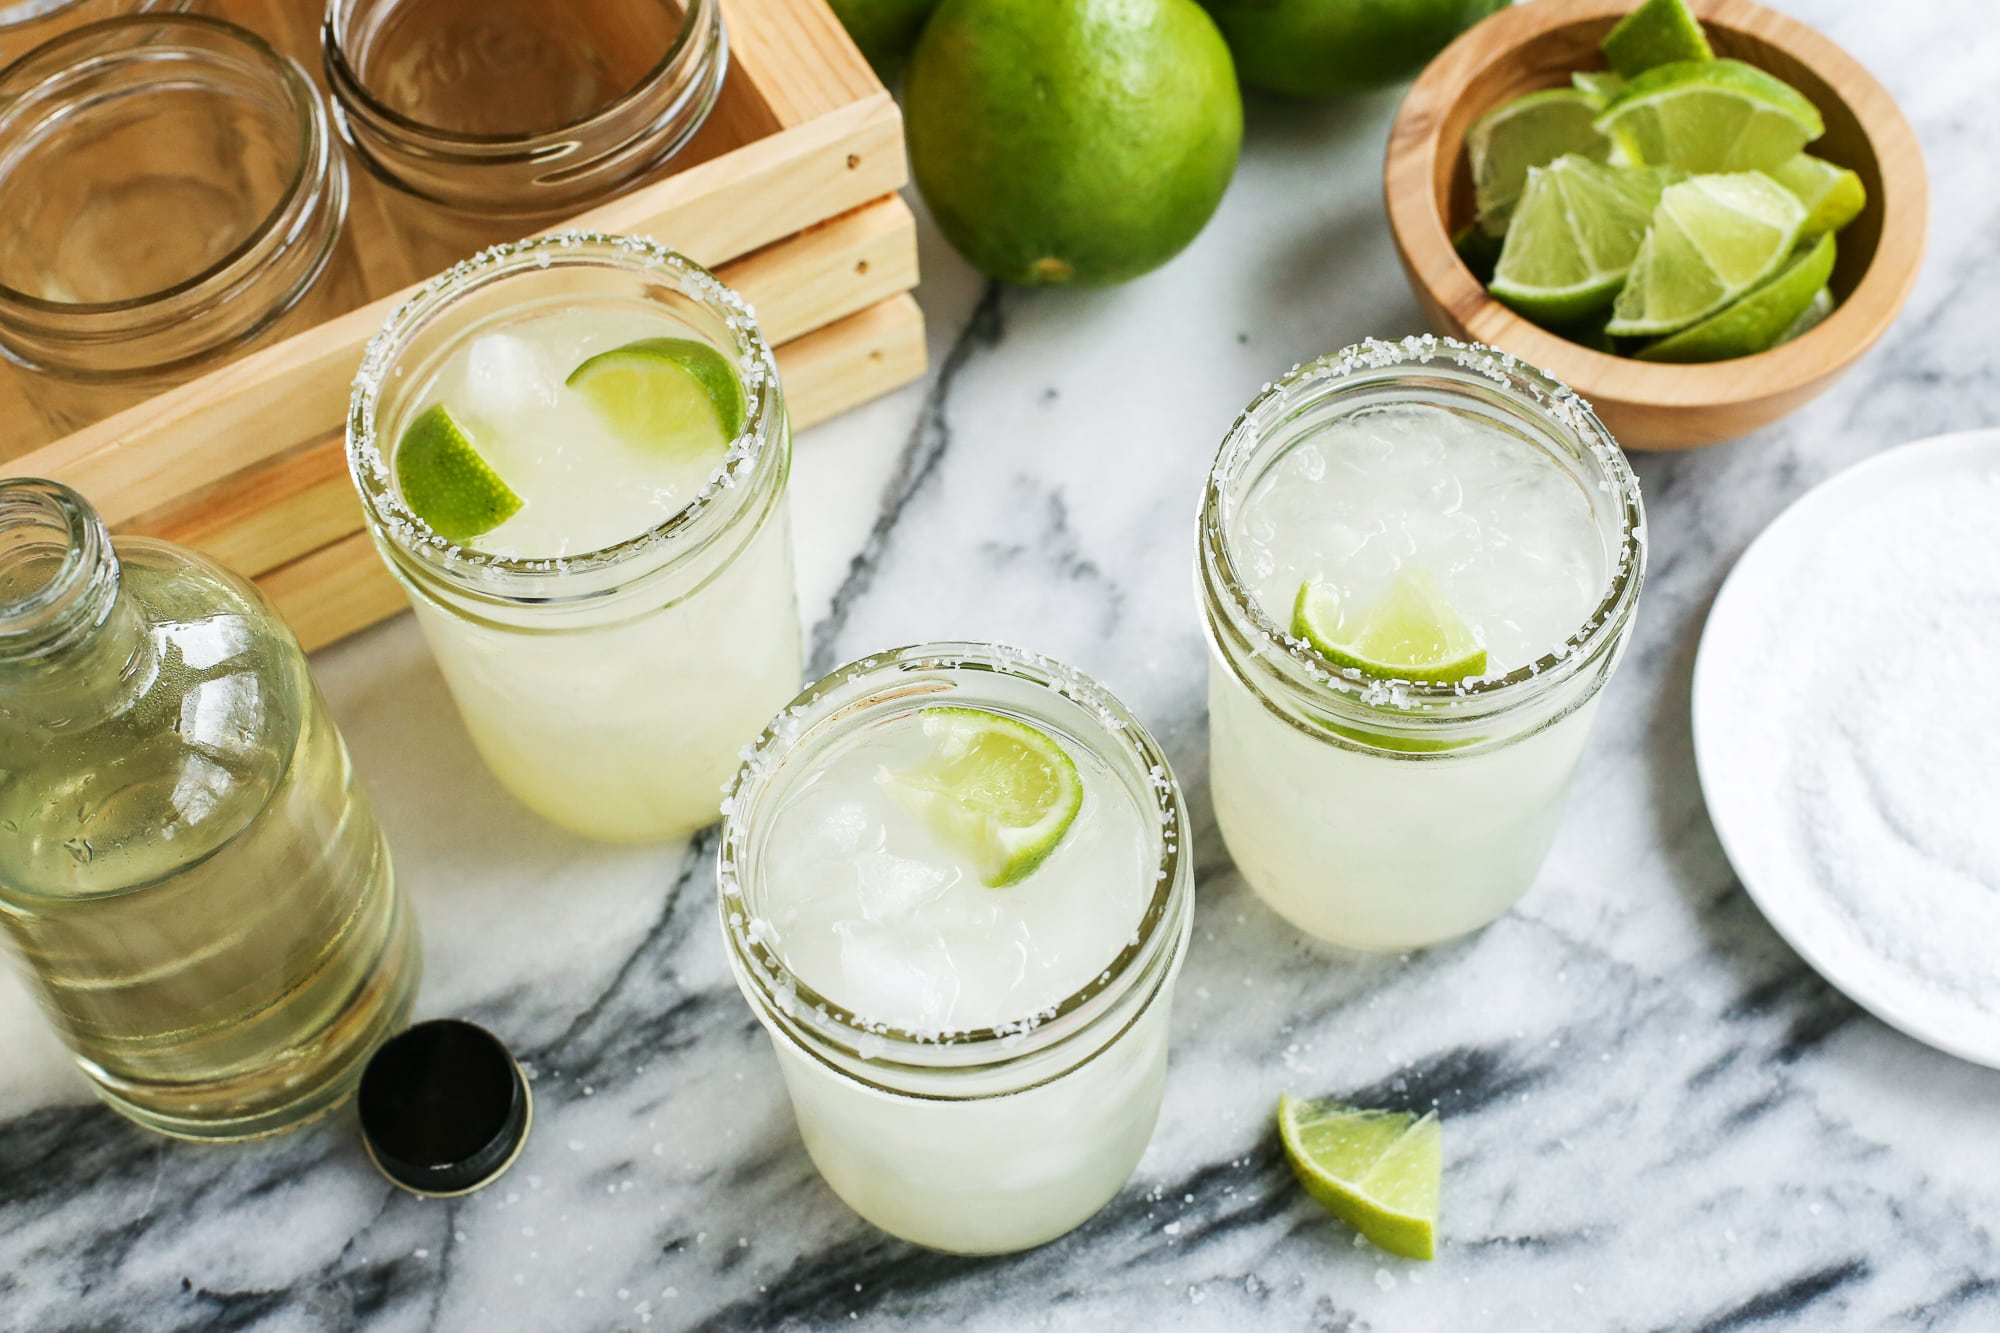 Make Your Cinco De Mayo Awesome with These 3 Margarita Recipes